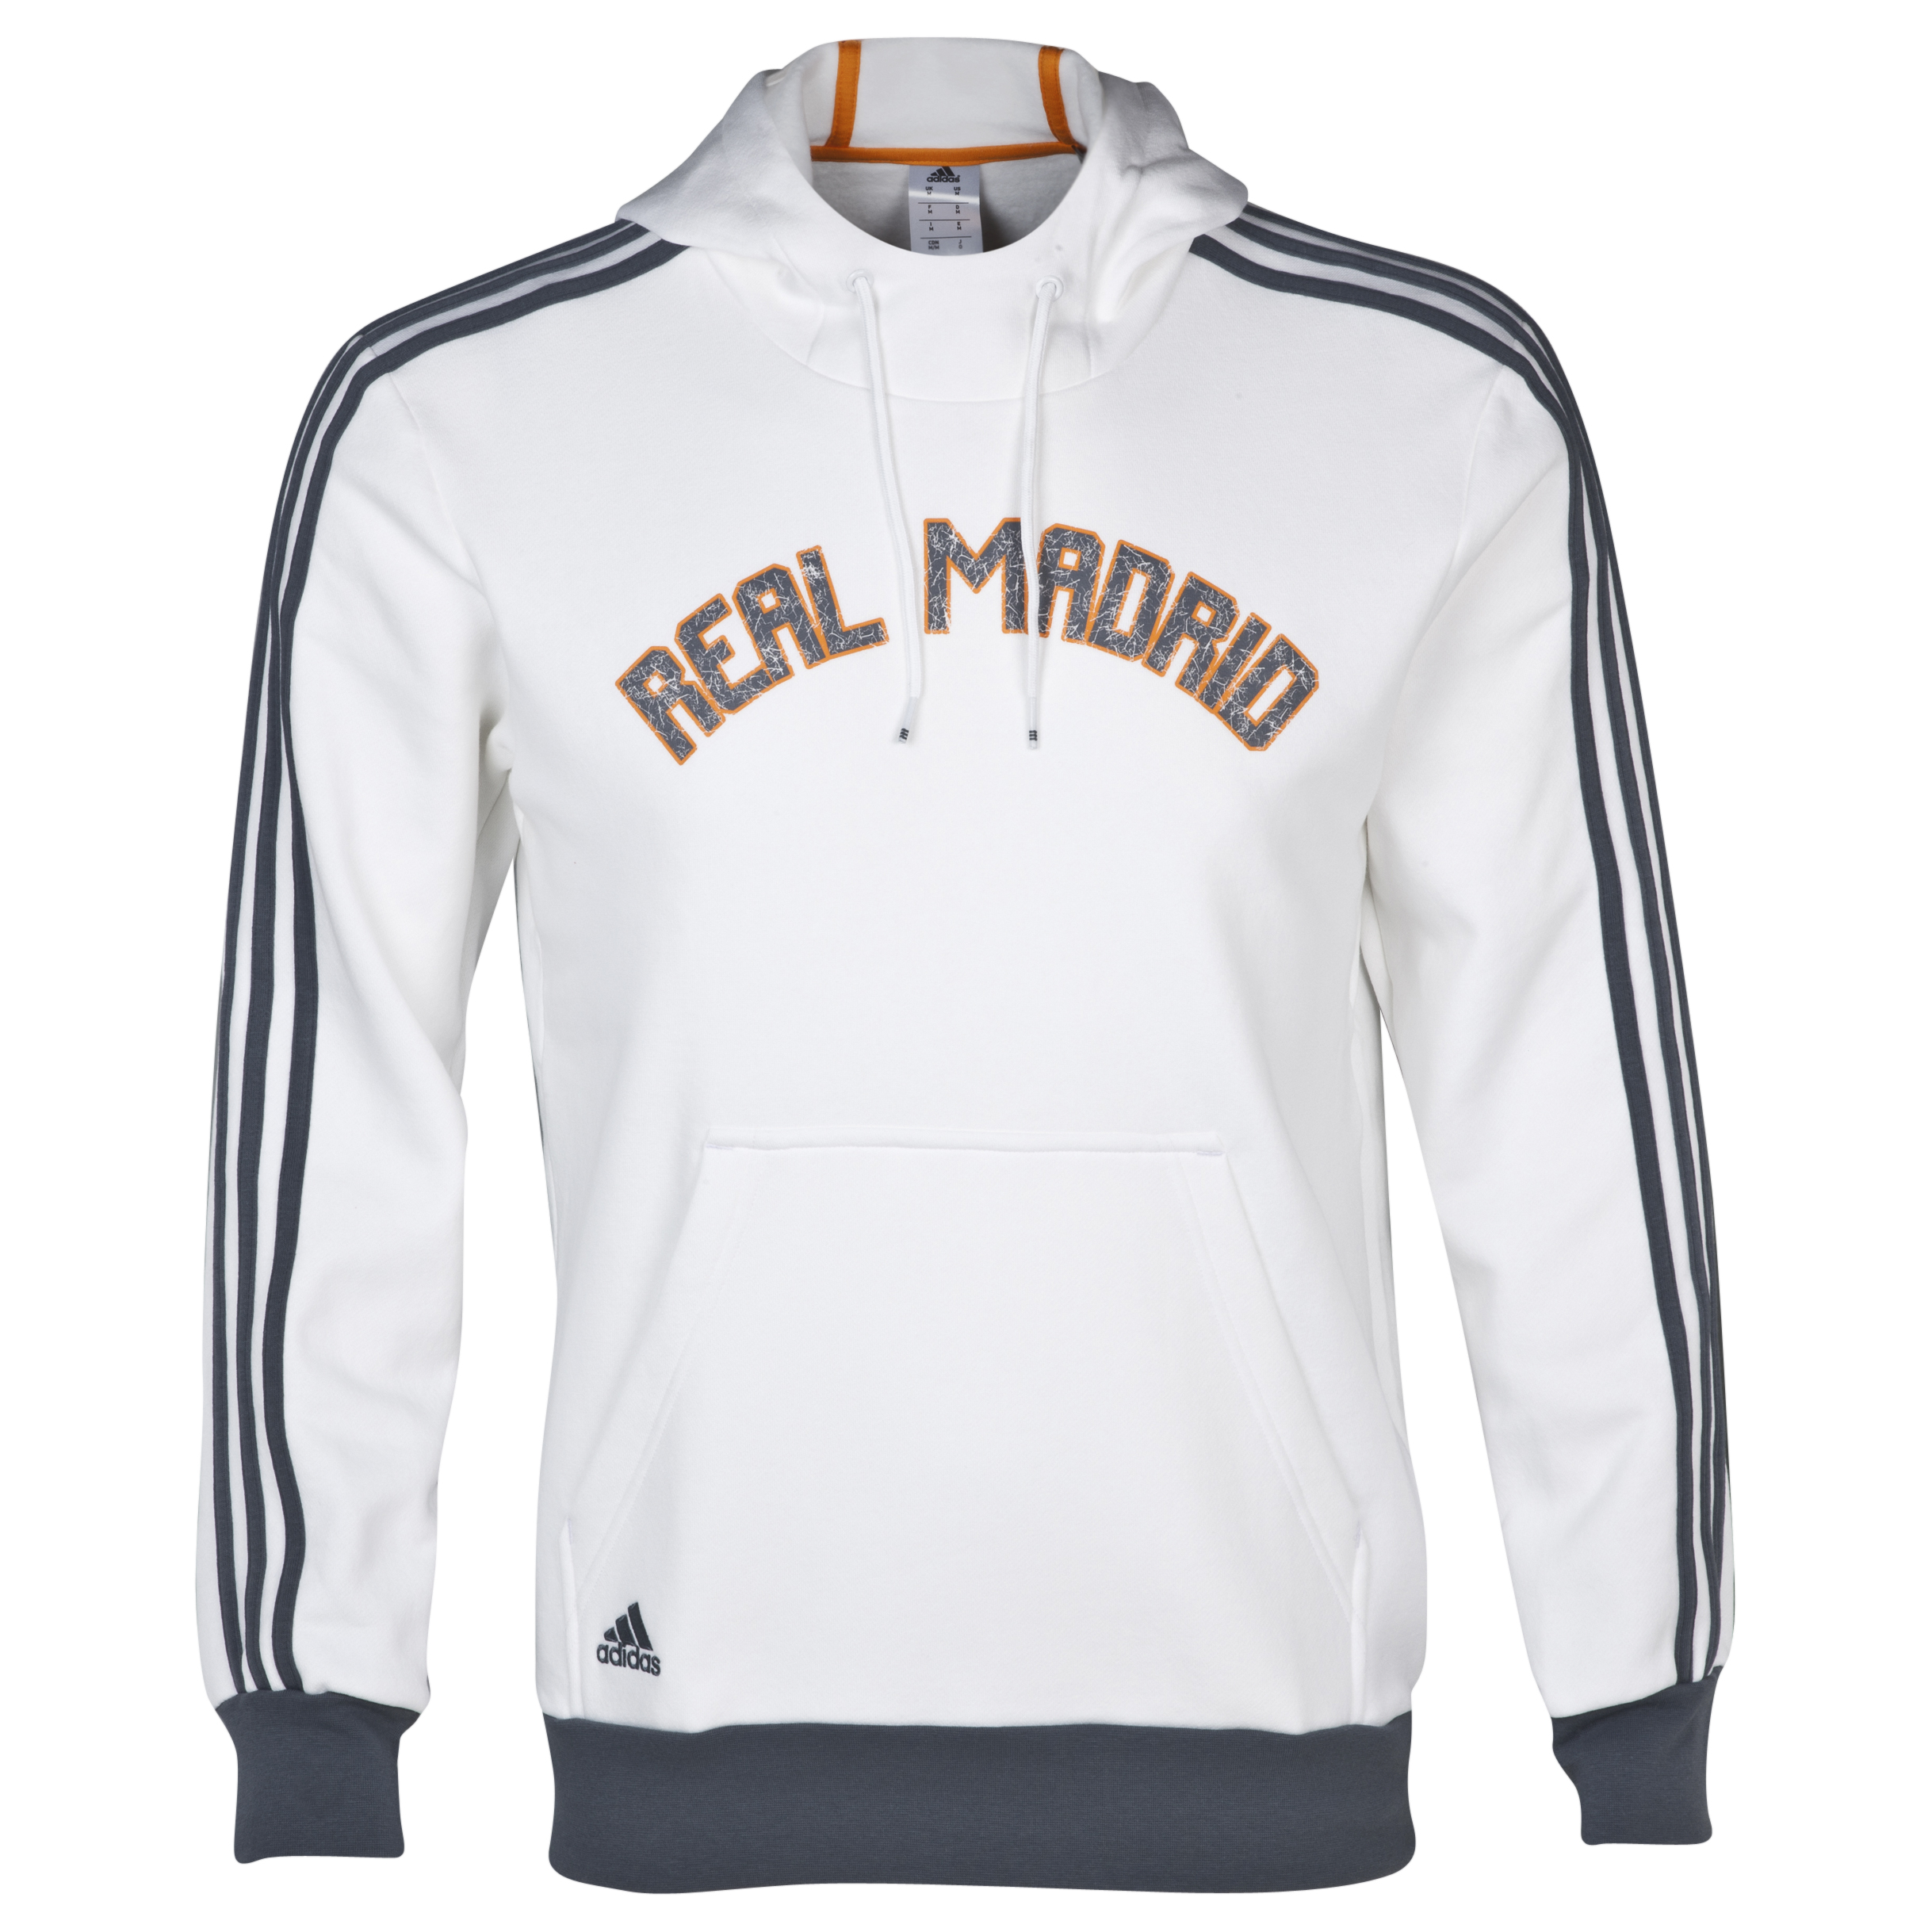 Real Madrid Core Hooded Sweatshirt - Mens White